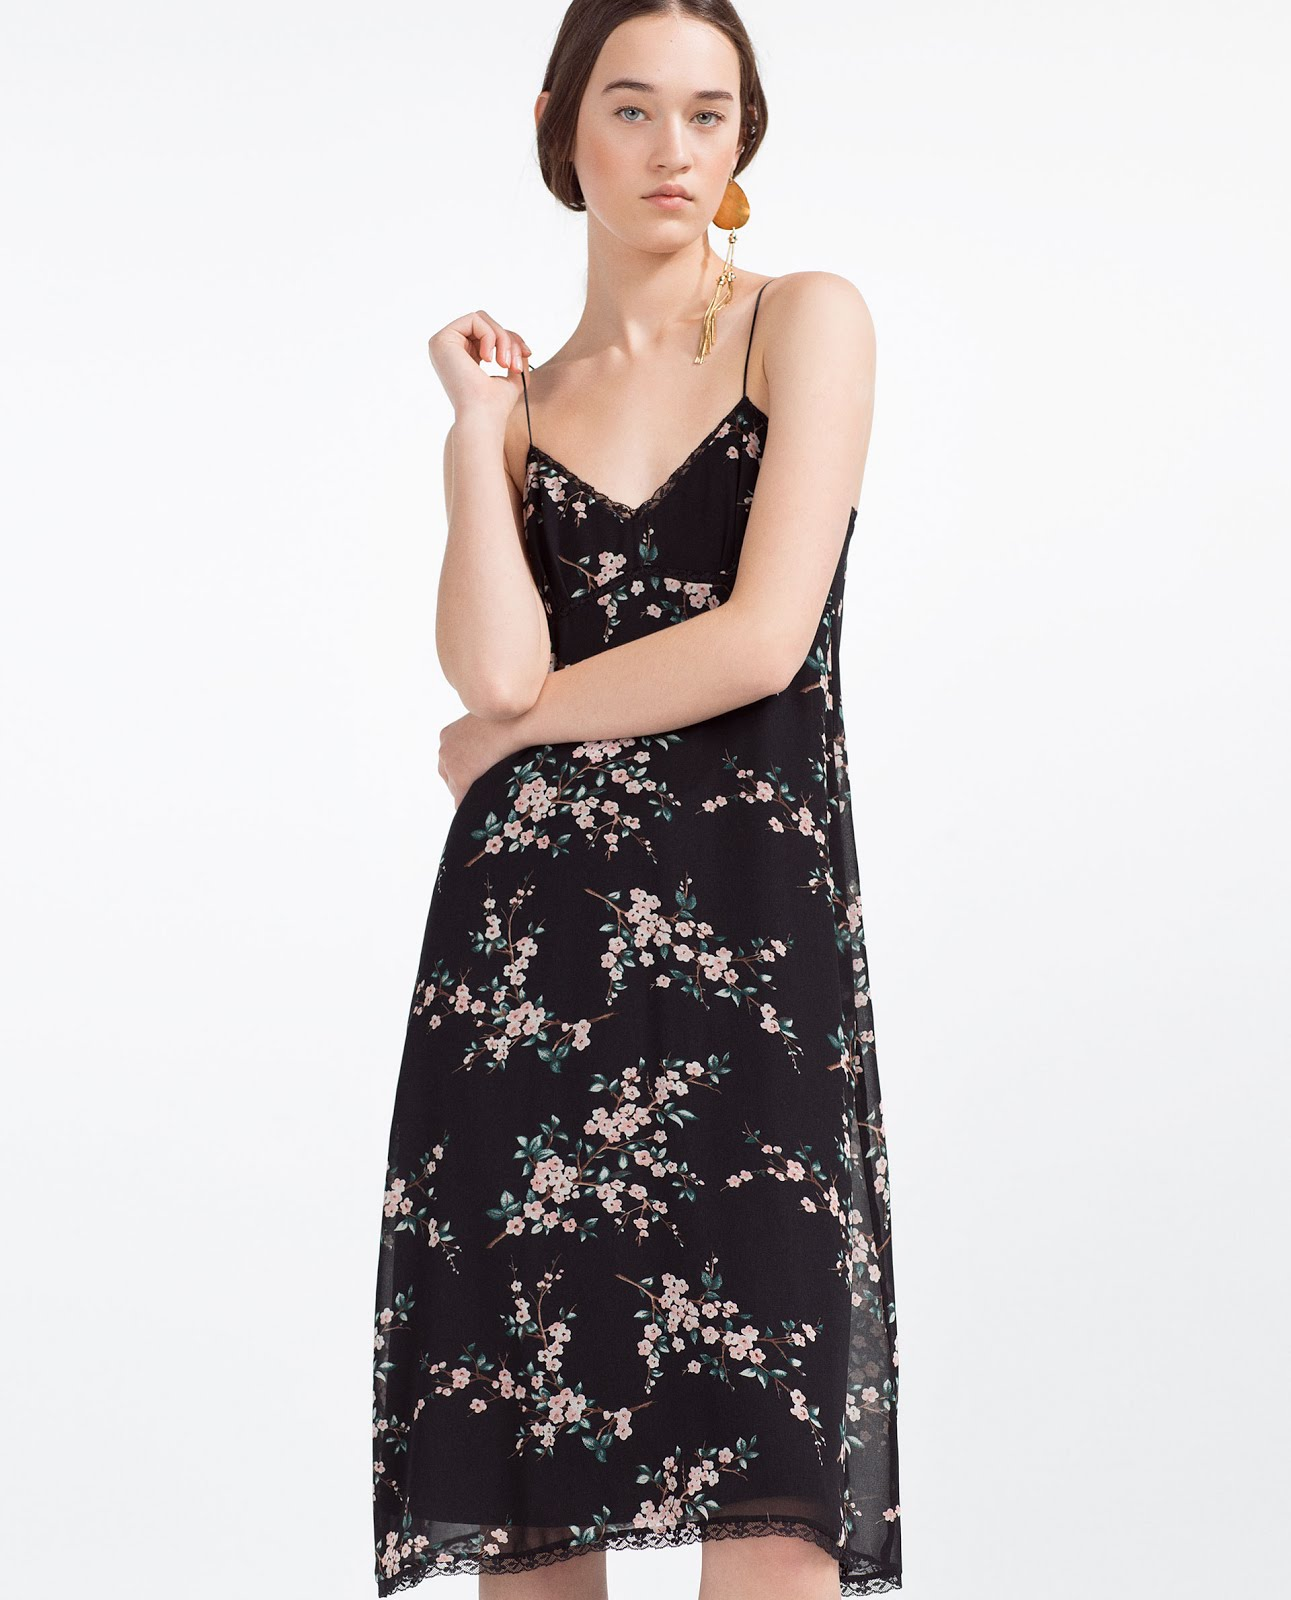 T shirt under dress -  Below Under A Jumper Bomber Or Cardigan Or Try A T Shirt Under It For This Summers 90 S Trend Zara Floral Camisole Dress 19 99 Worth Checking Store